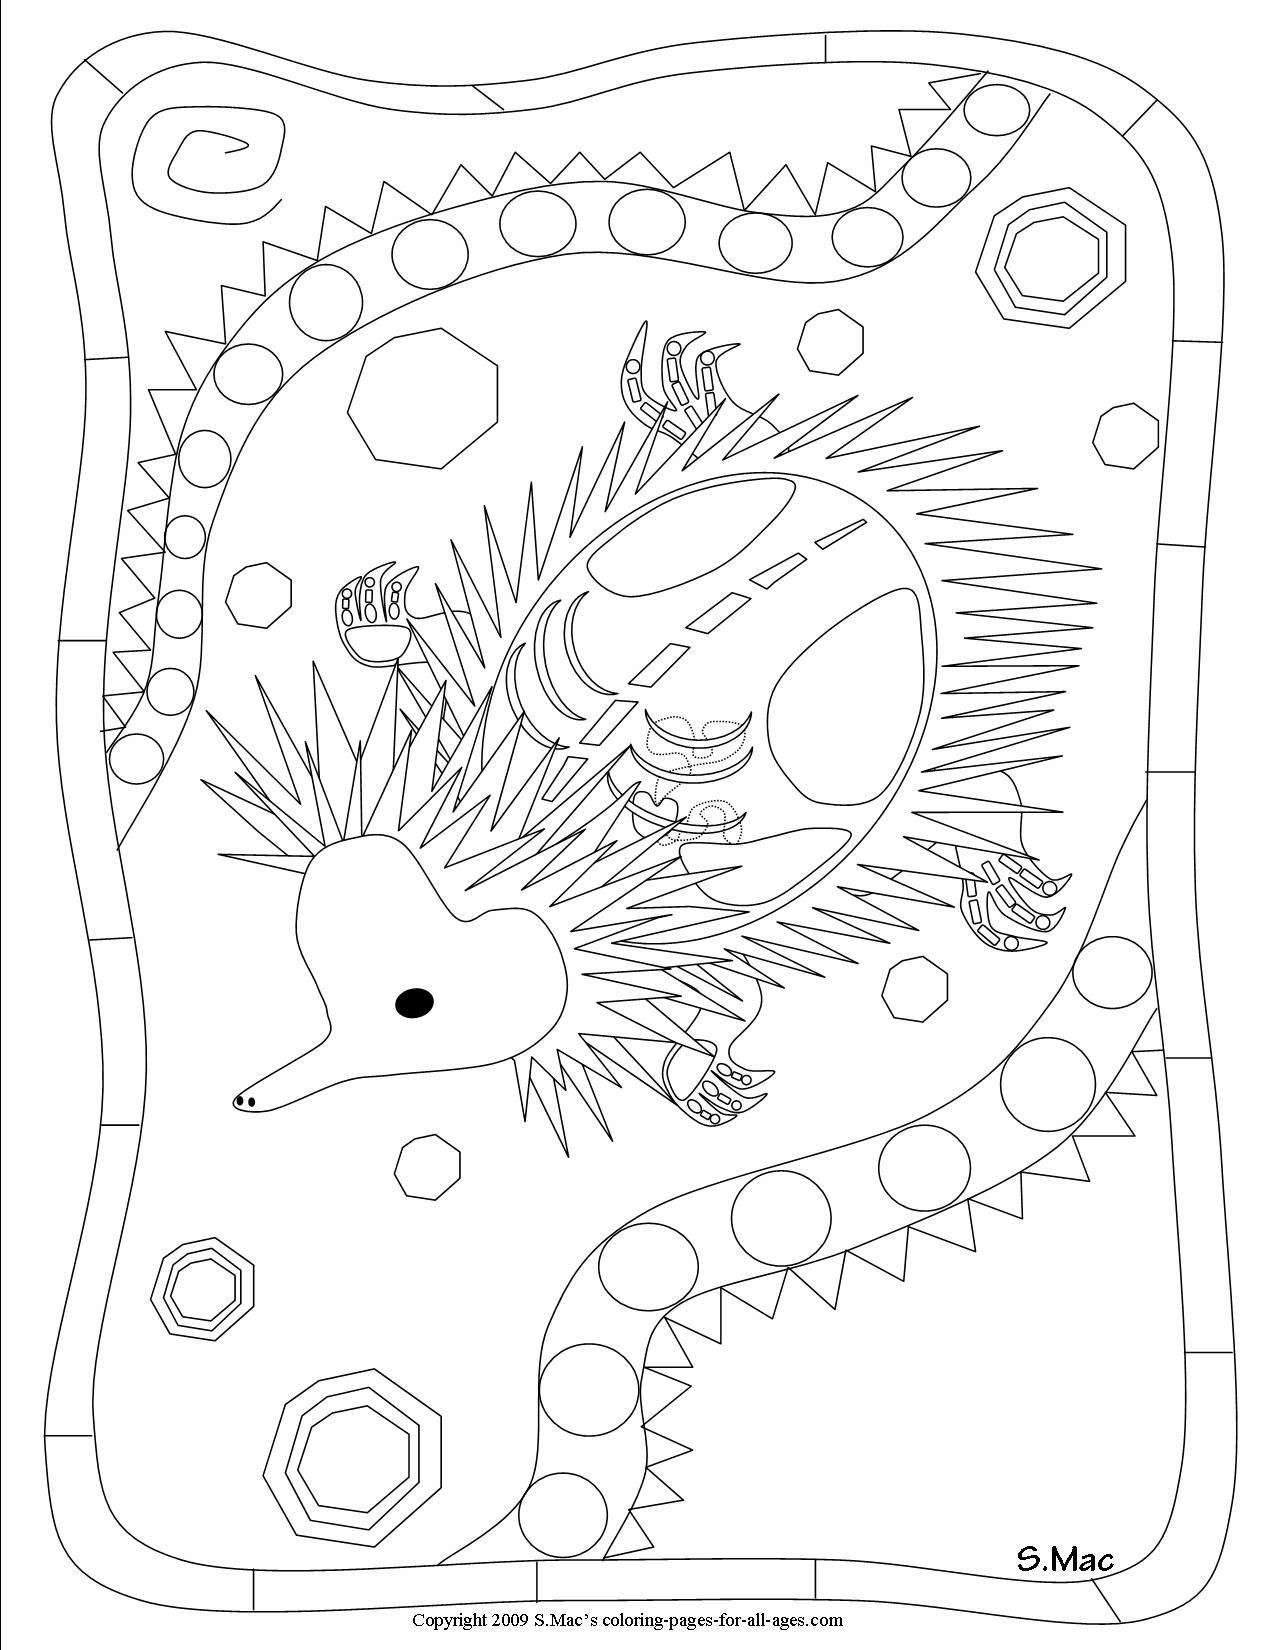 s mac 39 s echidna x ray art coloring page australie squelette art art coloring pages art. Black Bedroom Furniture Sets. Home Design Ideas